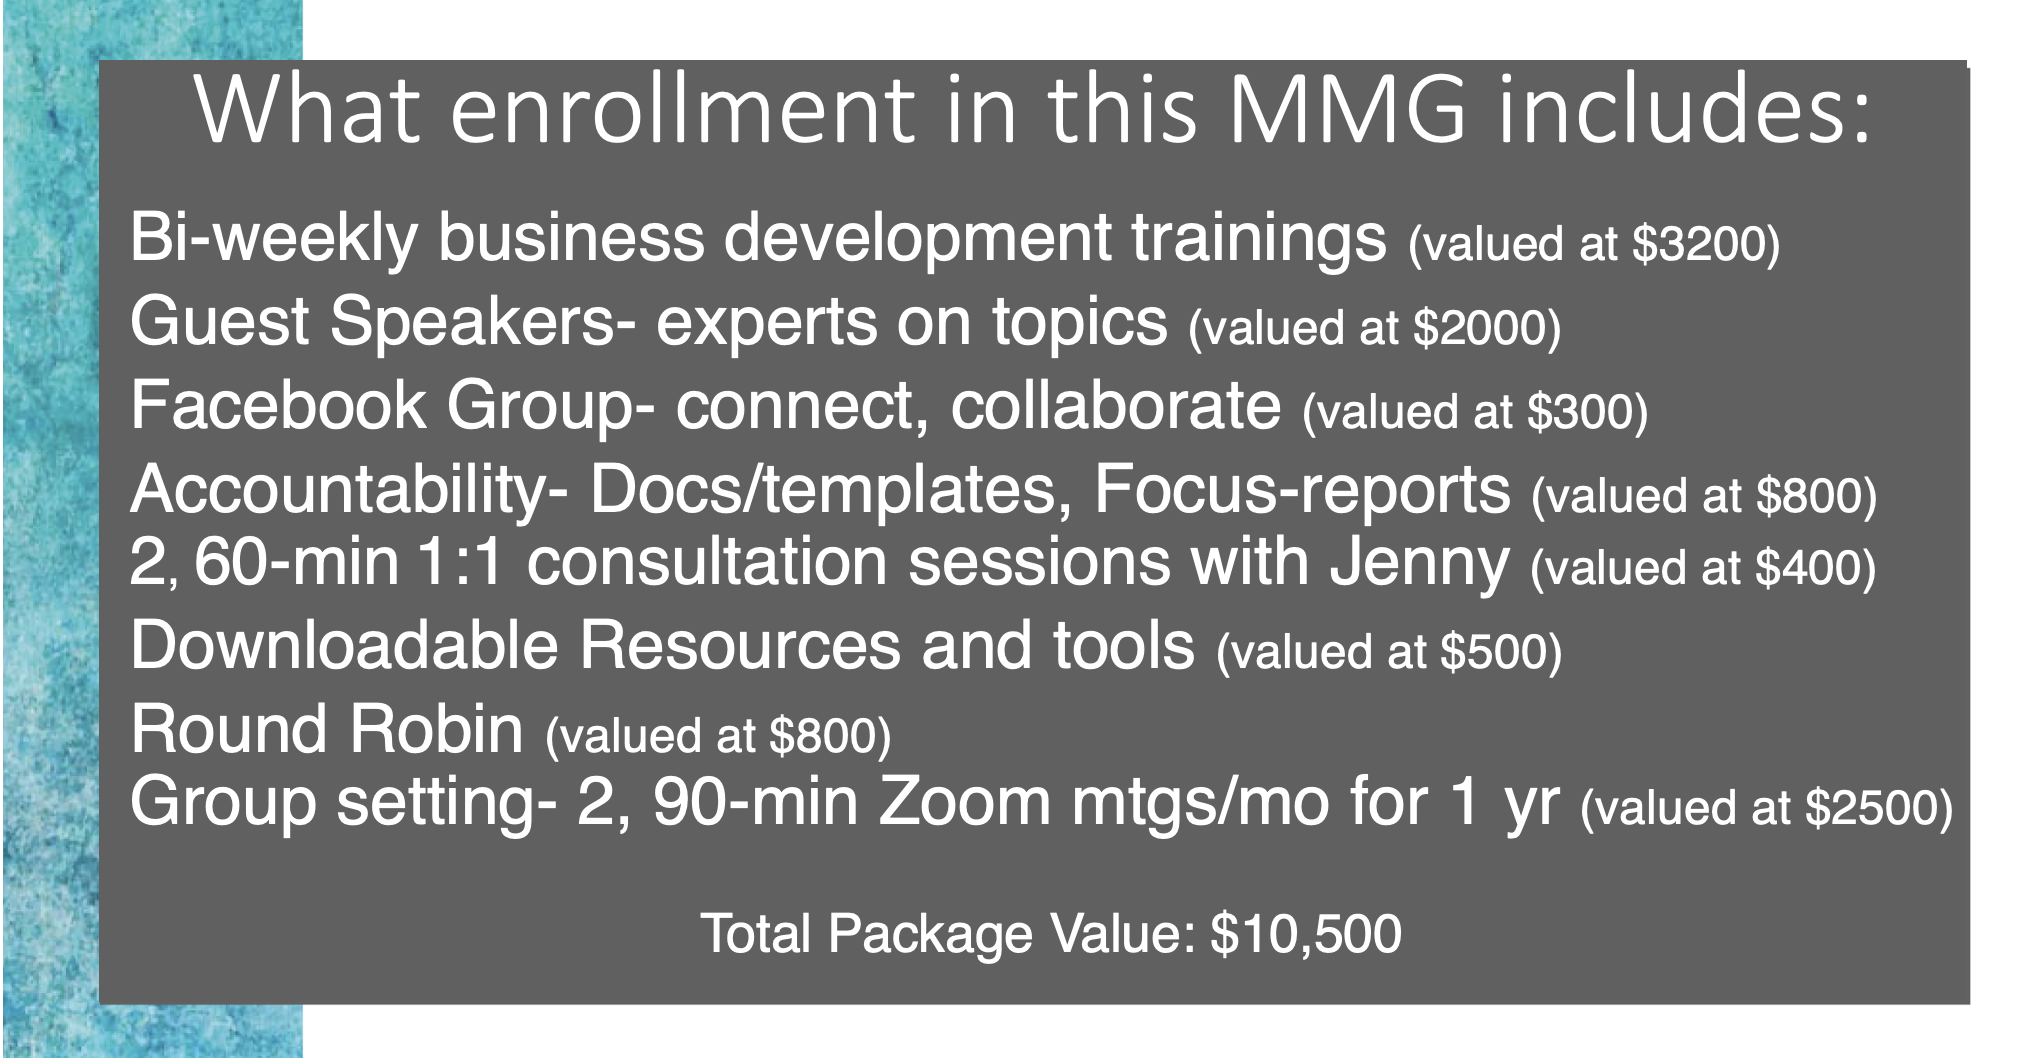 MMG Enrollment Includes